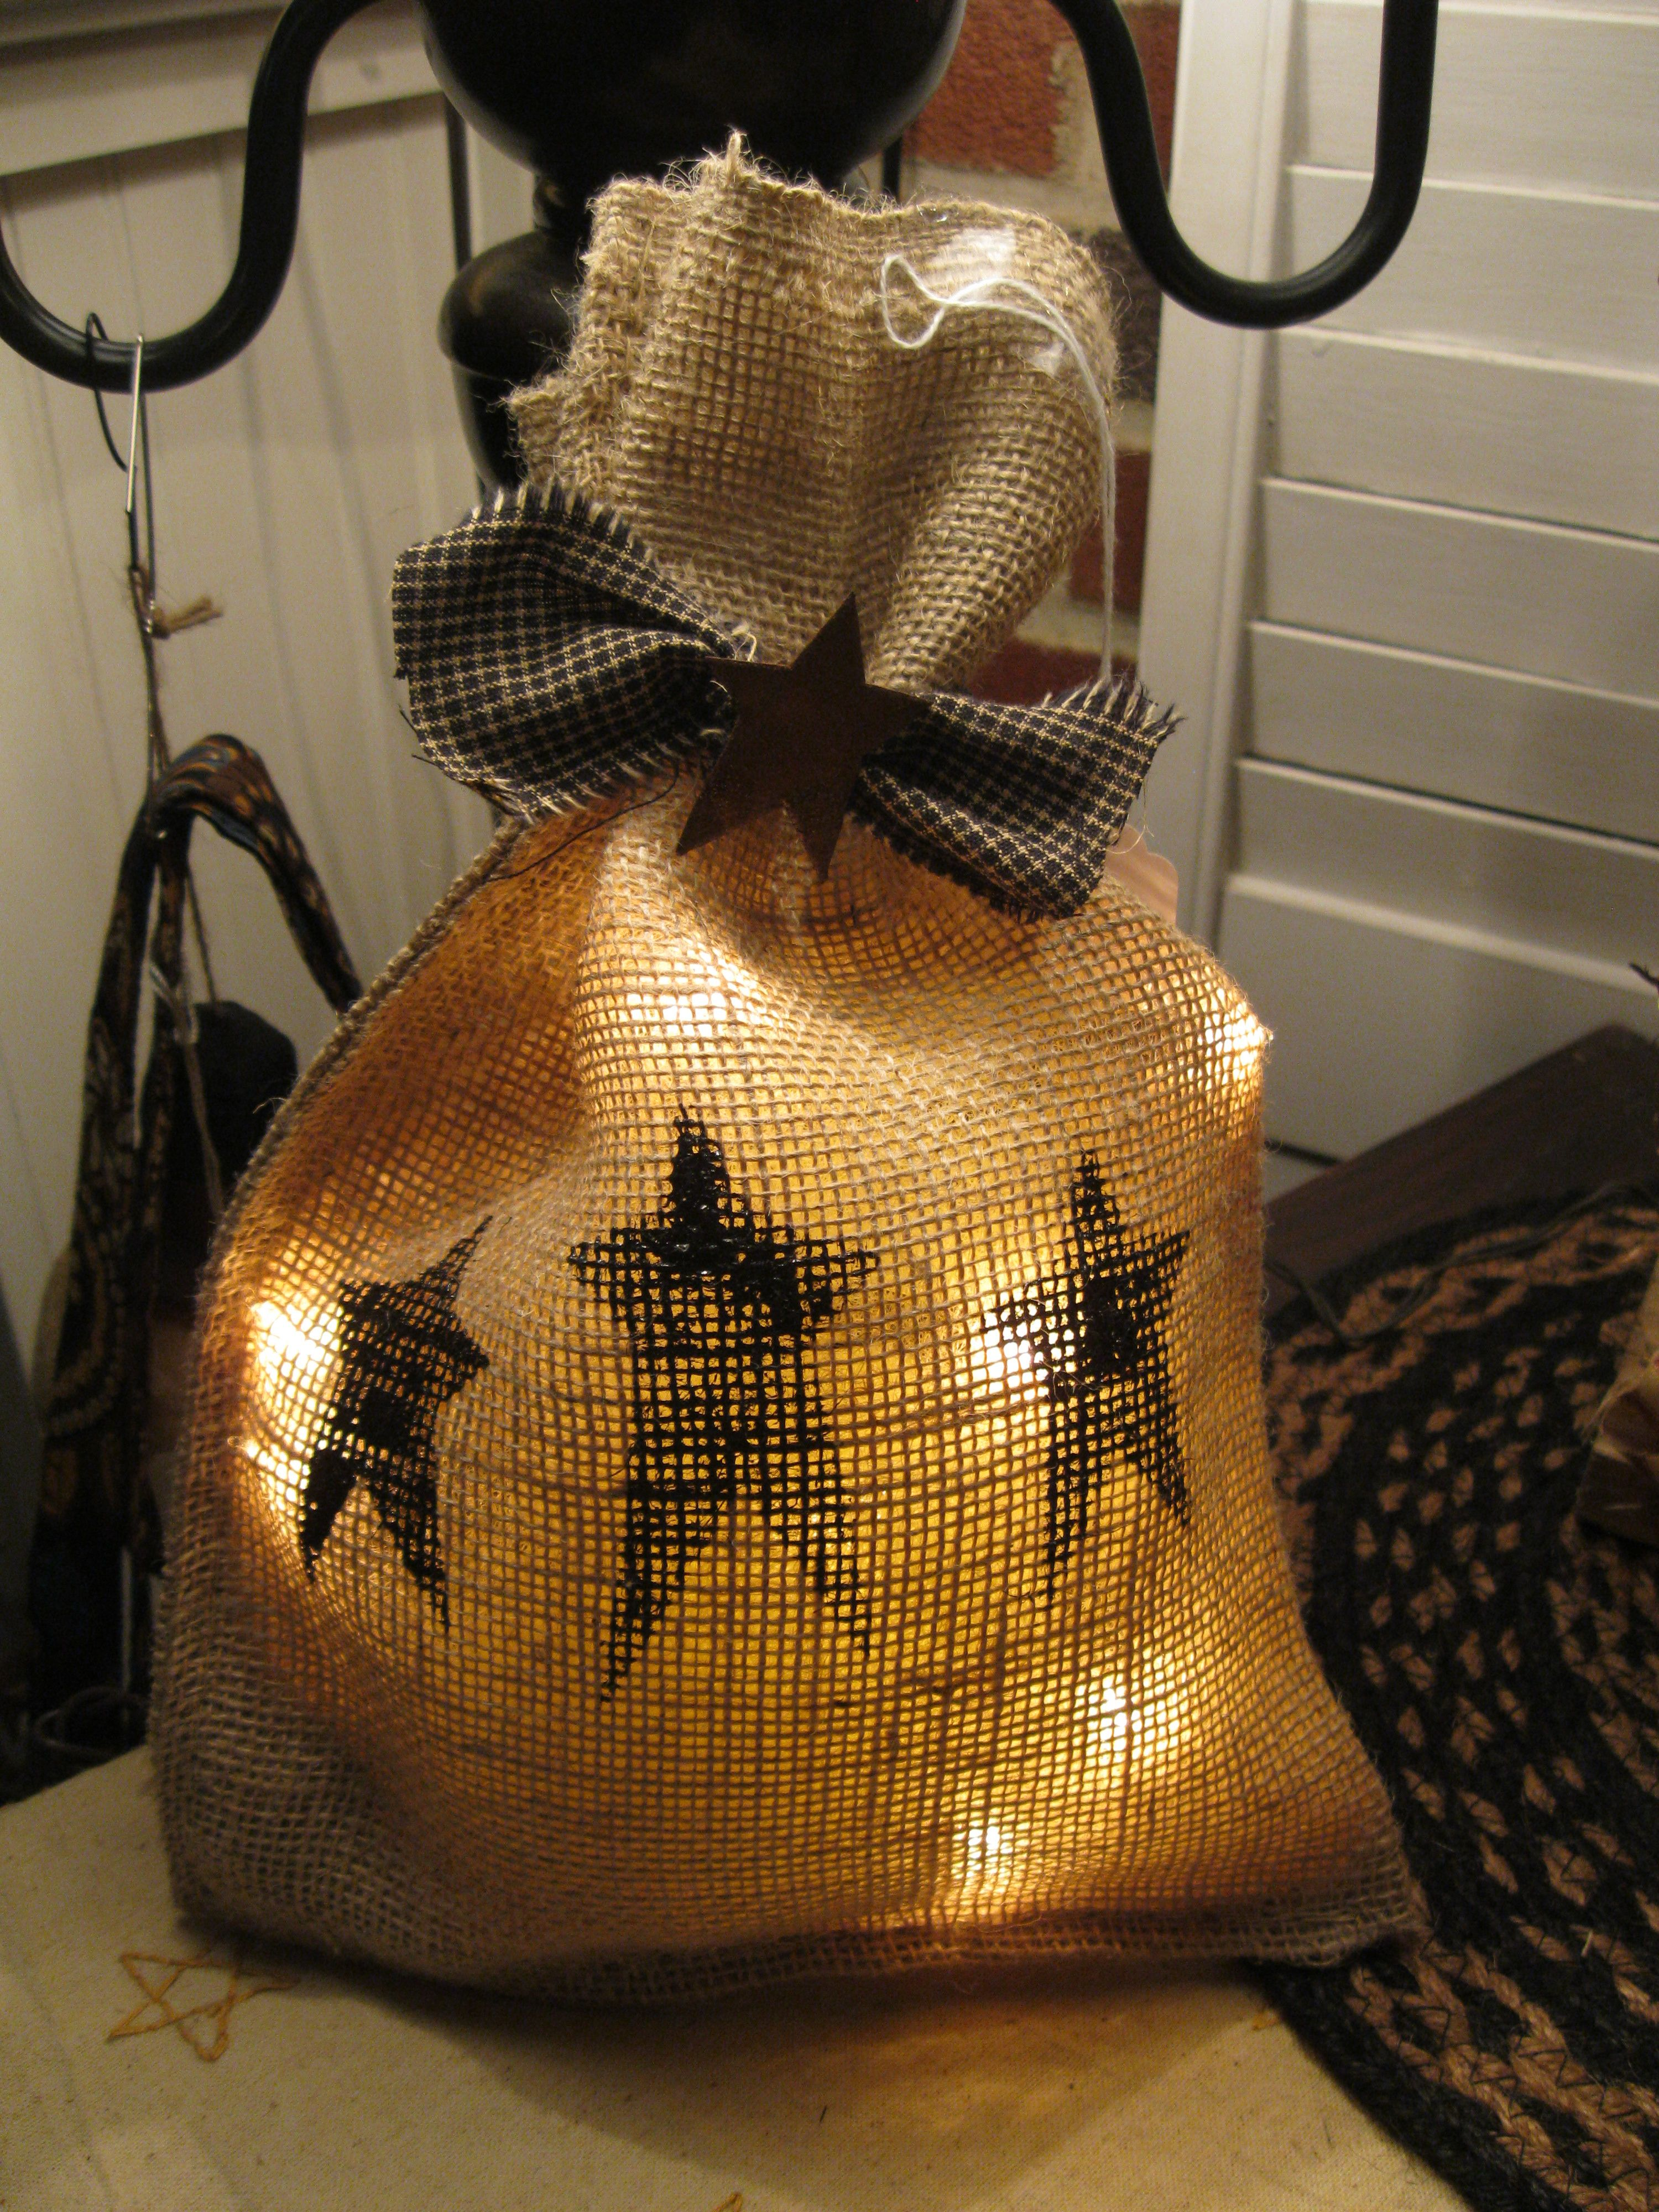 Lighted Burlap Bag There are always lights